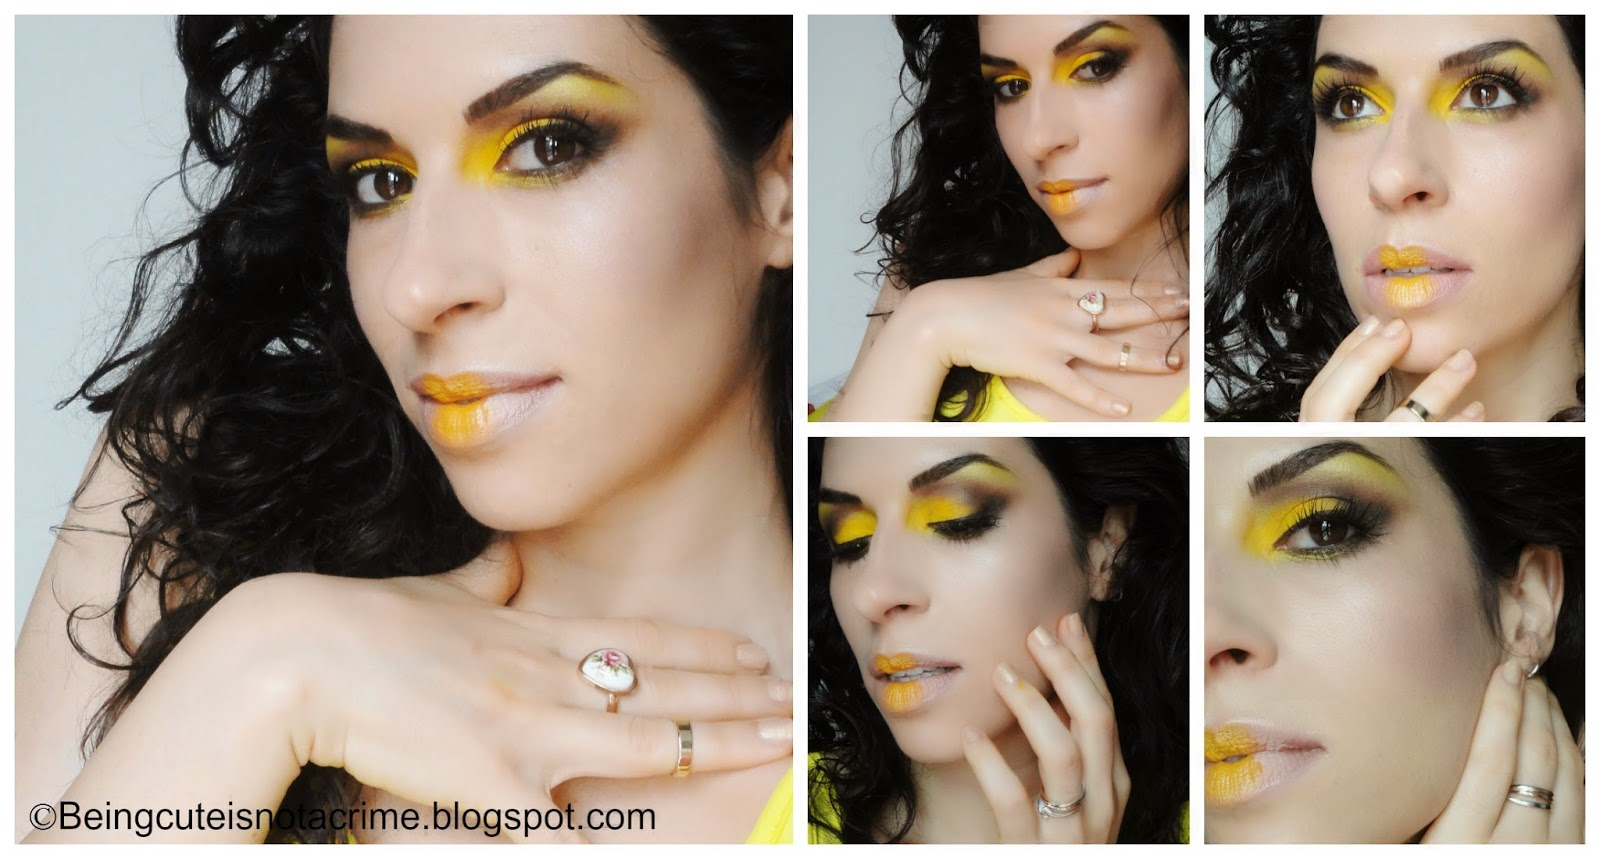 http://beingcuteisnotacrime.blogspot.nl/2014/06/we-live-in-rainbow-of-chaos-yellow-make.html